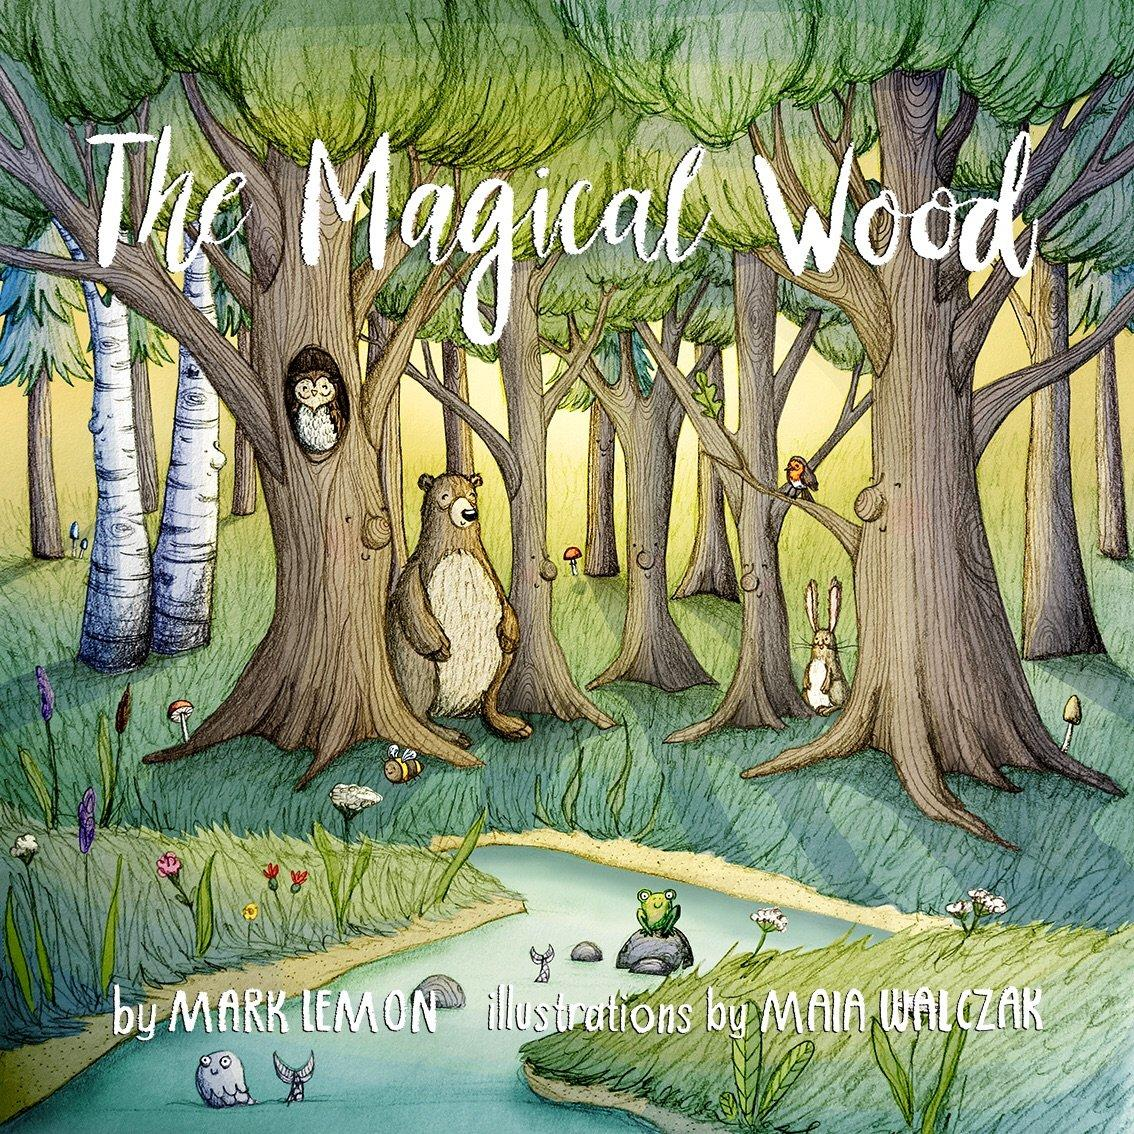 Books for toddlers - The Magical Wood